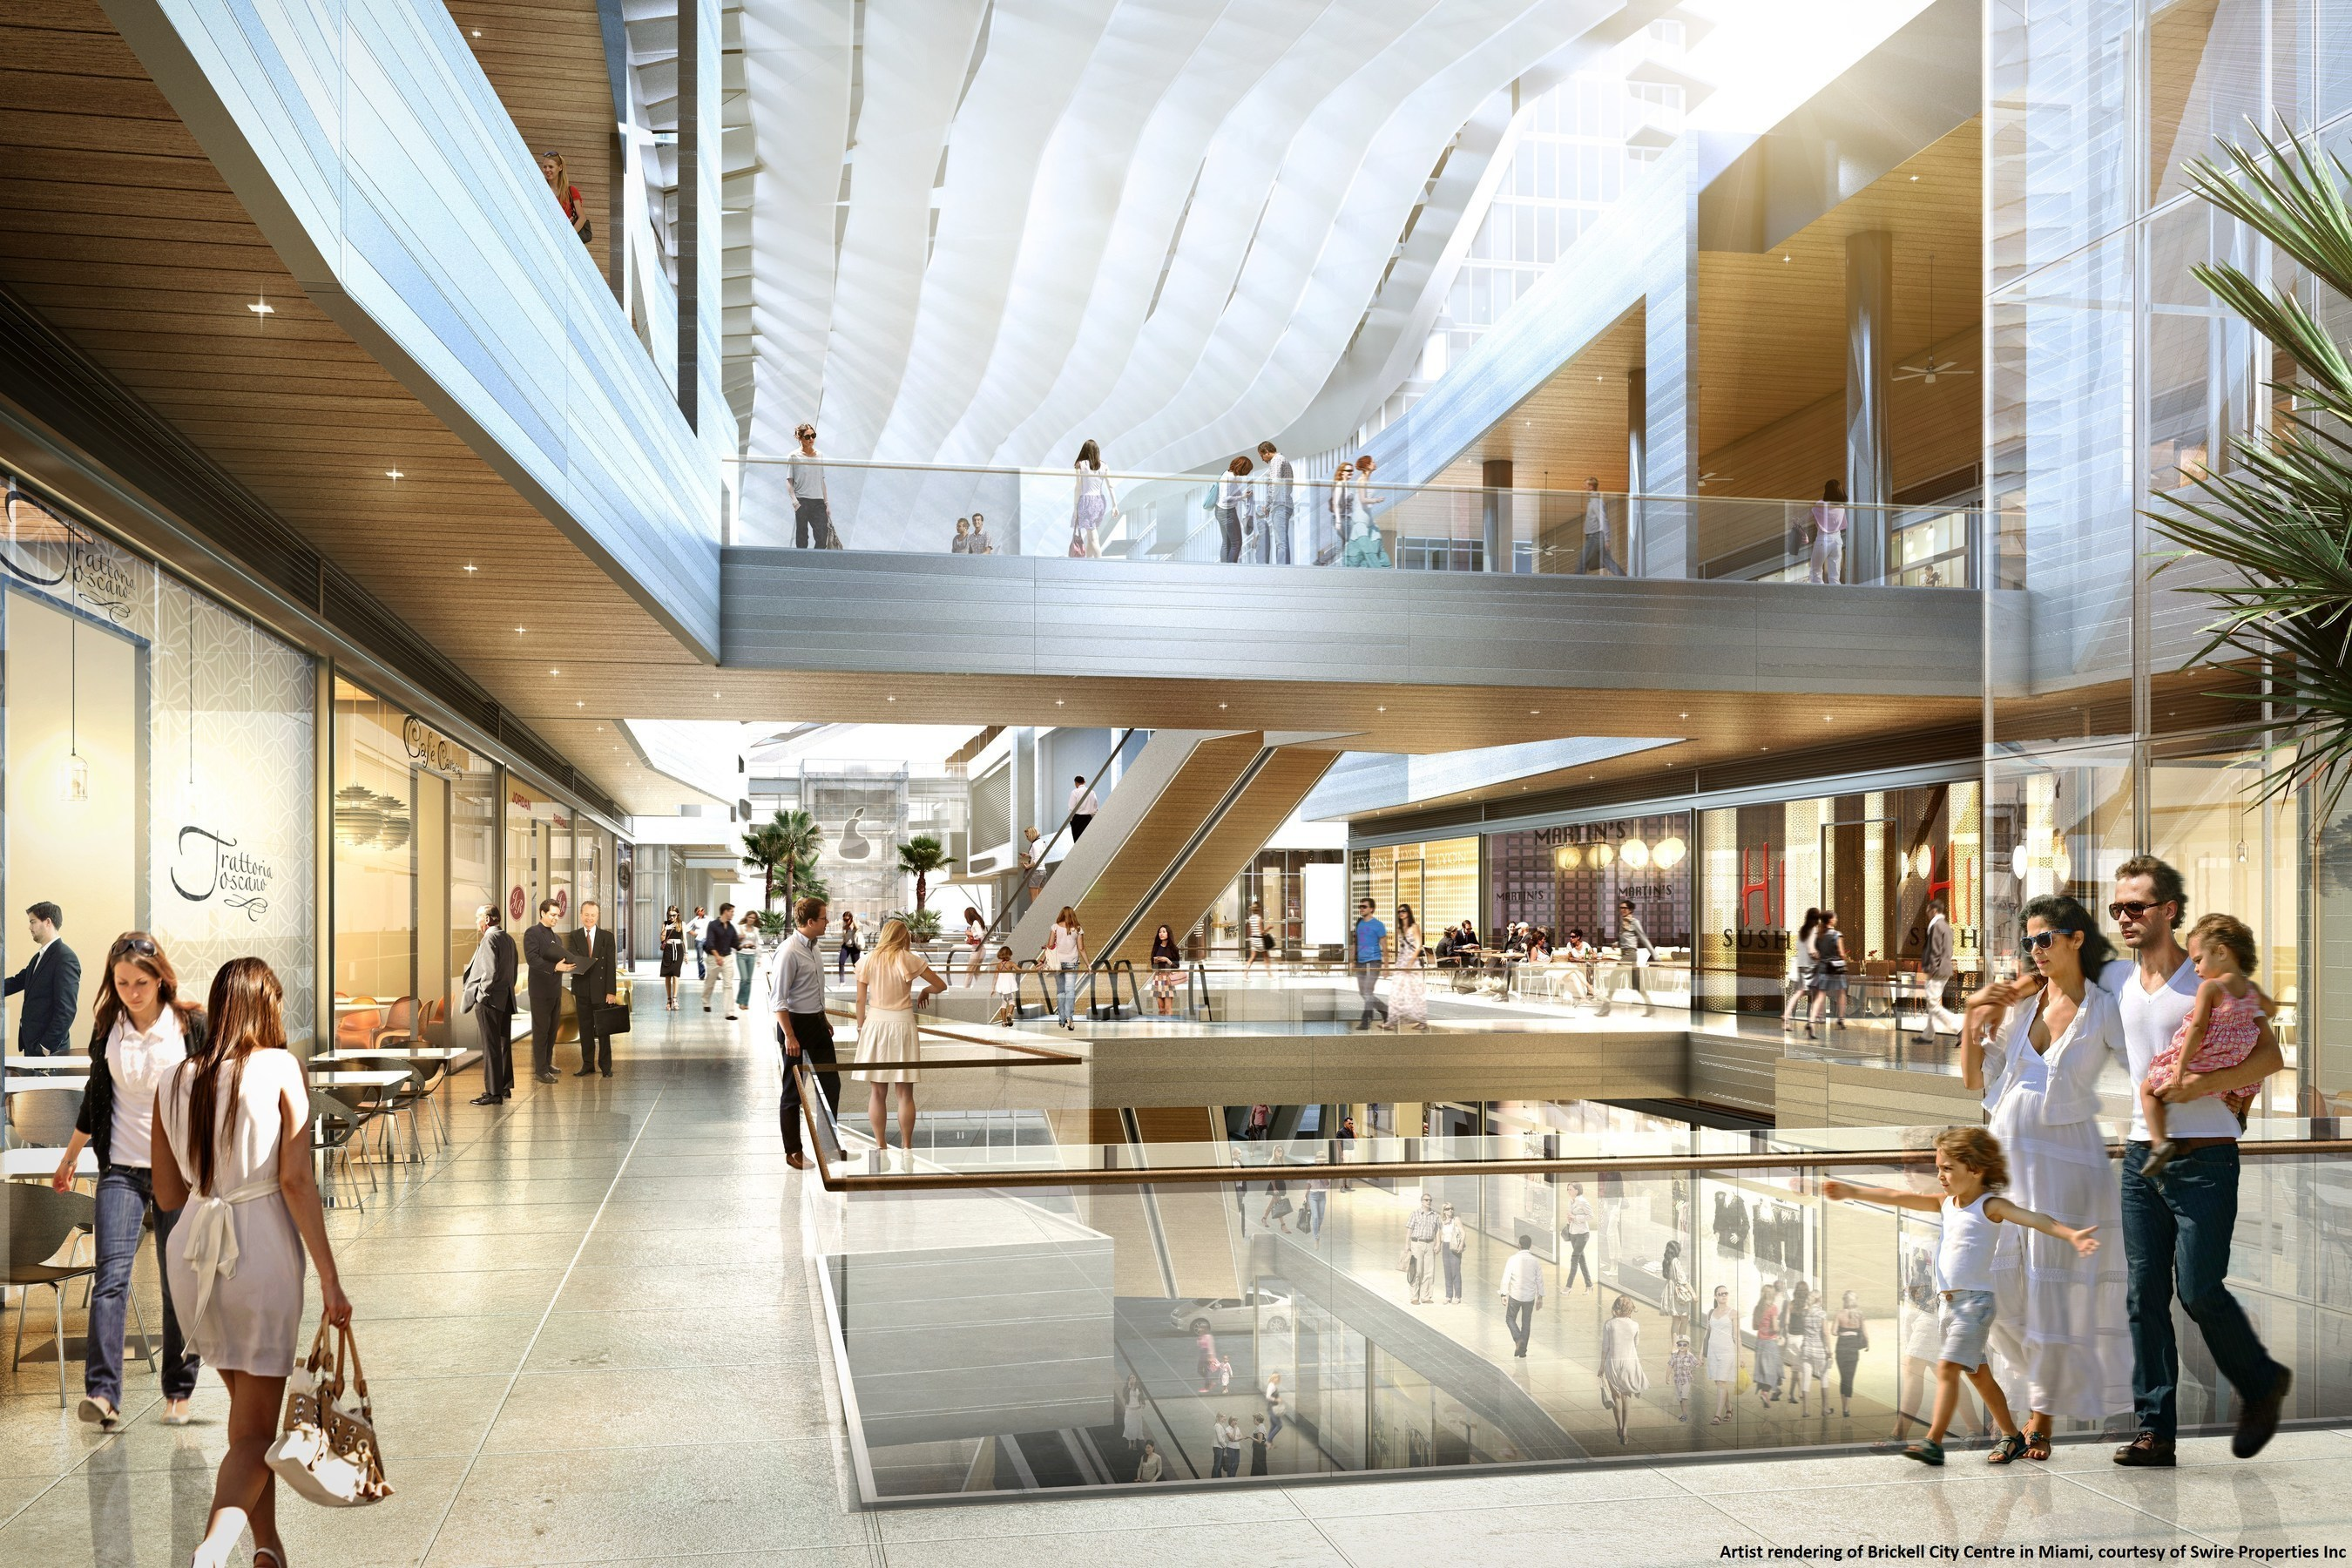 Brickell City Centre's 500,000 square-foot open-air shopping center, opening in fall 2016